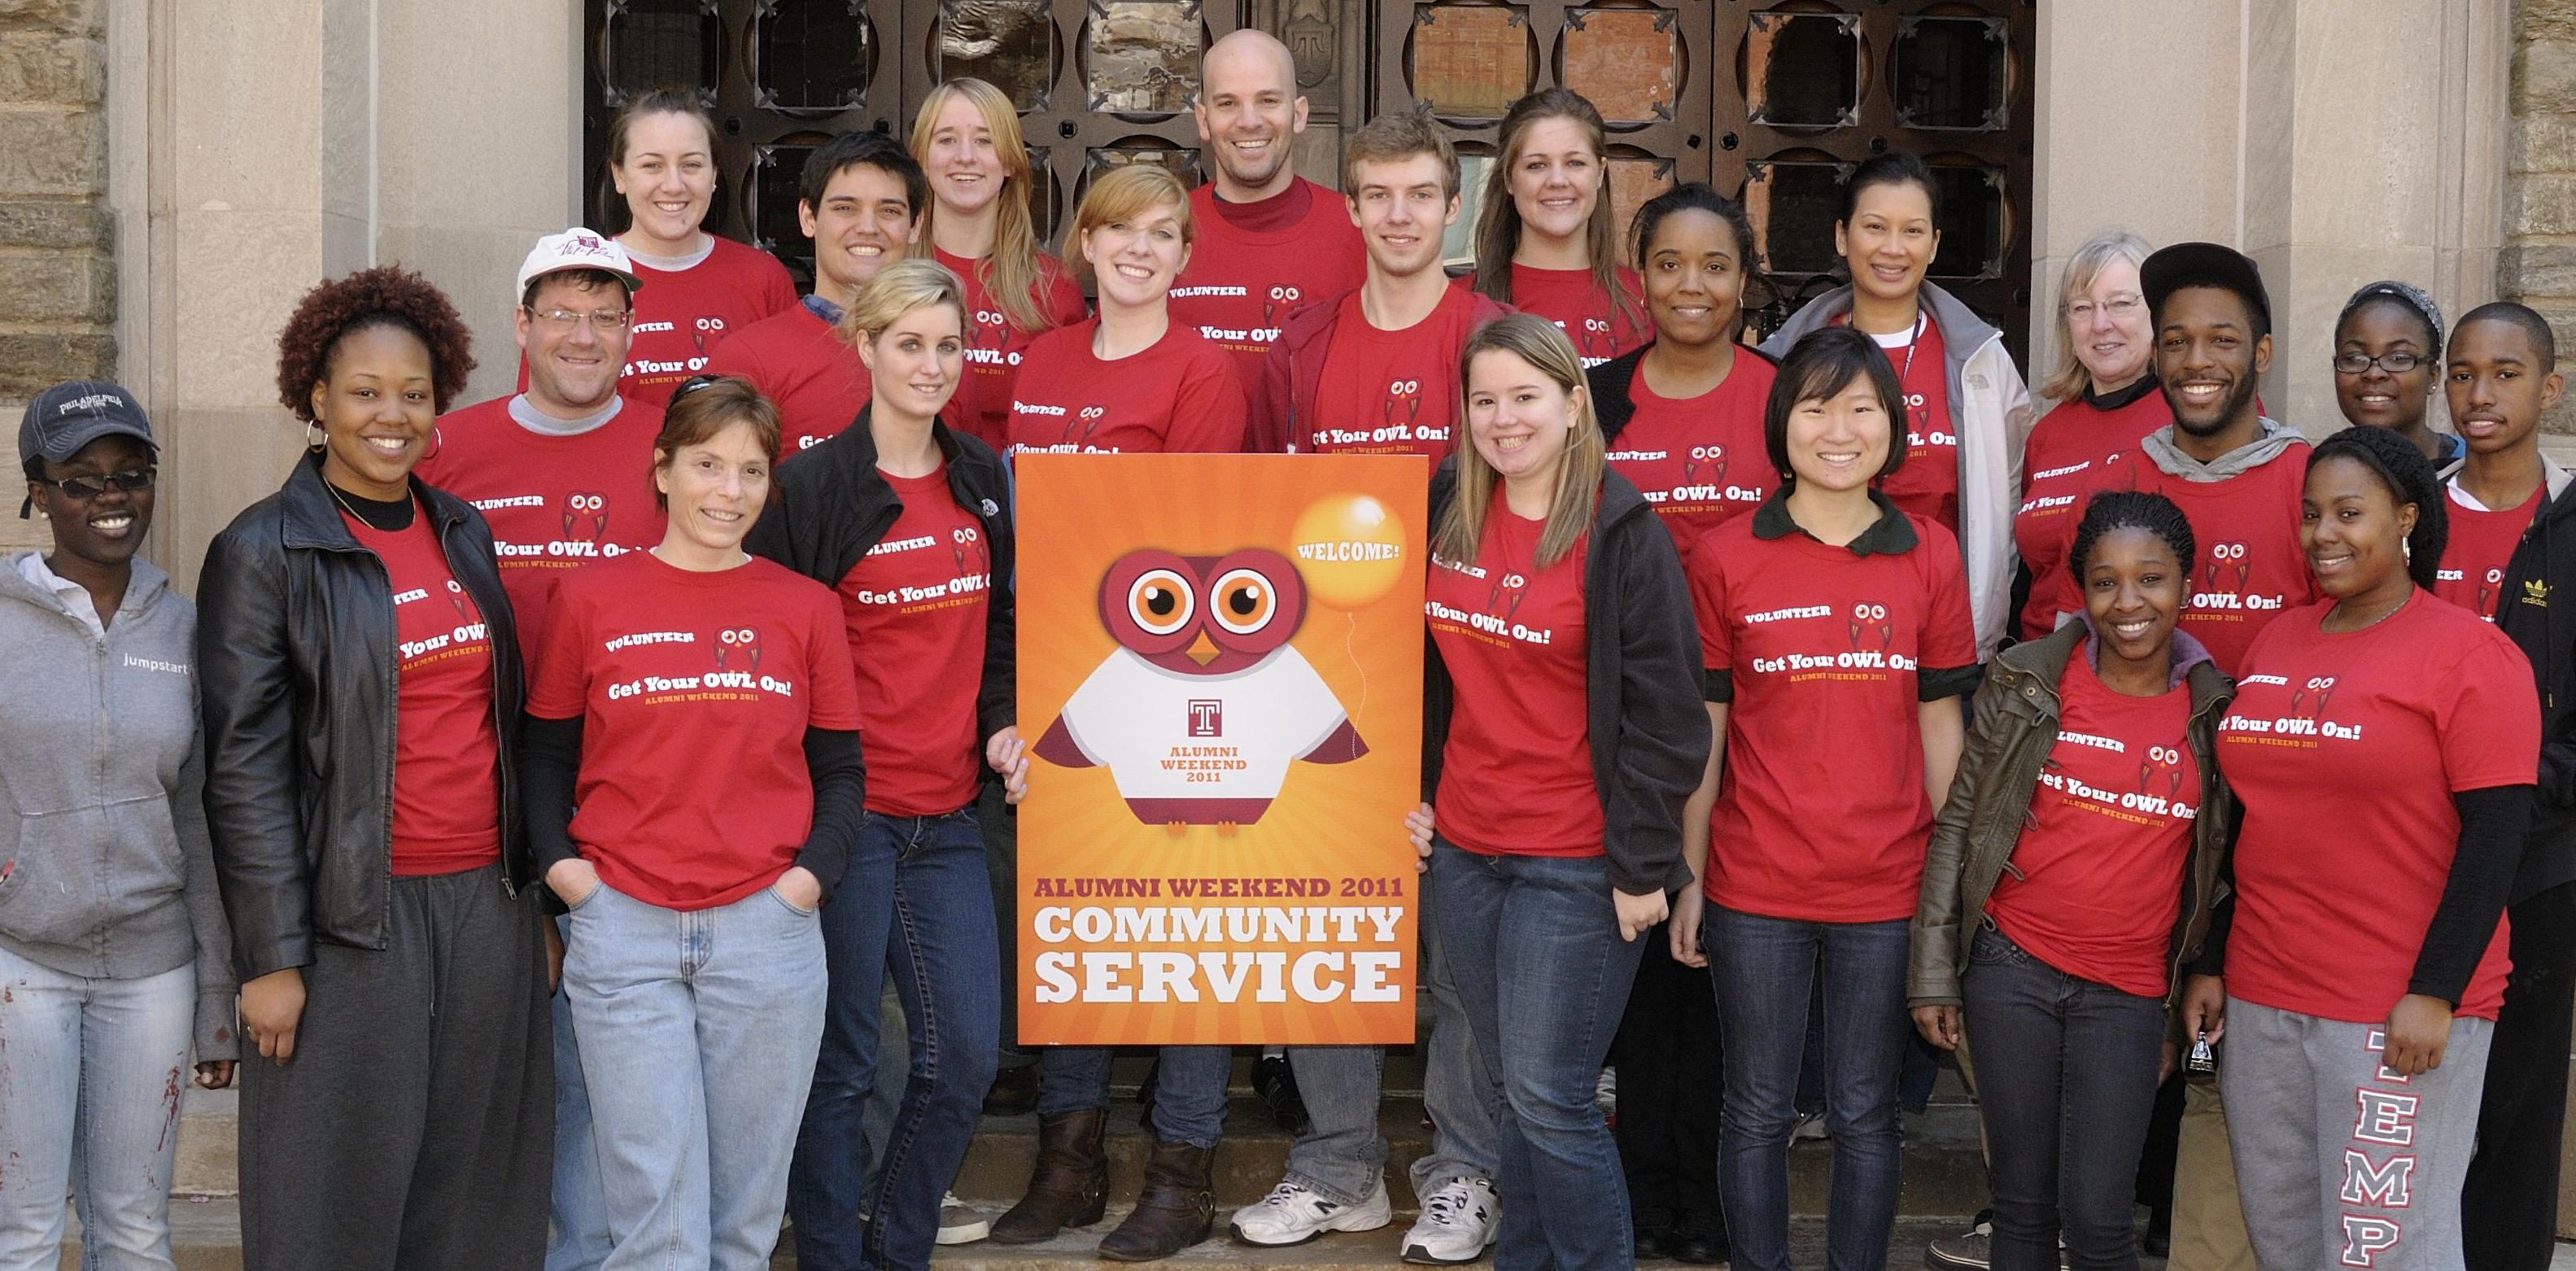 Community Service group from Alumni Weekend